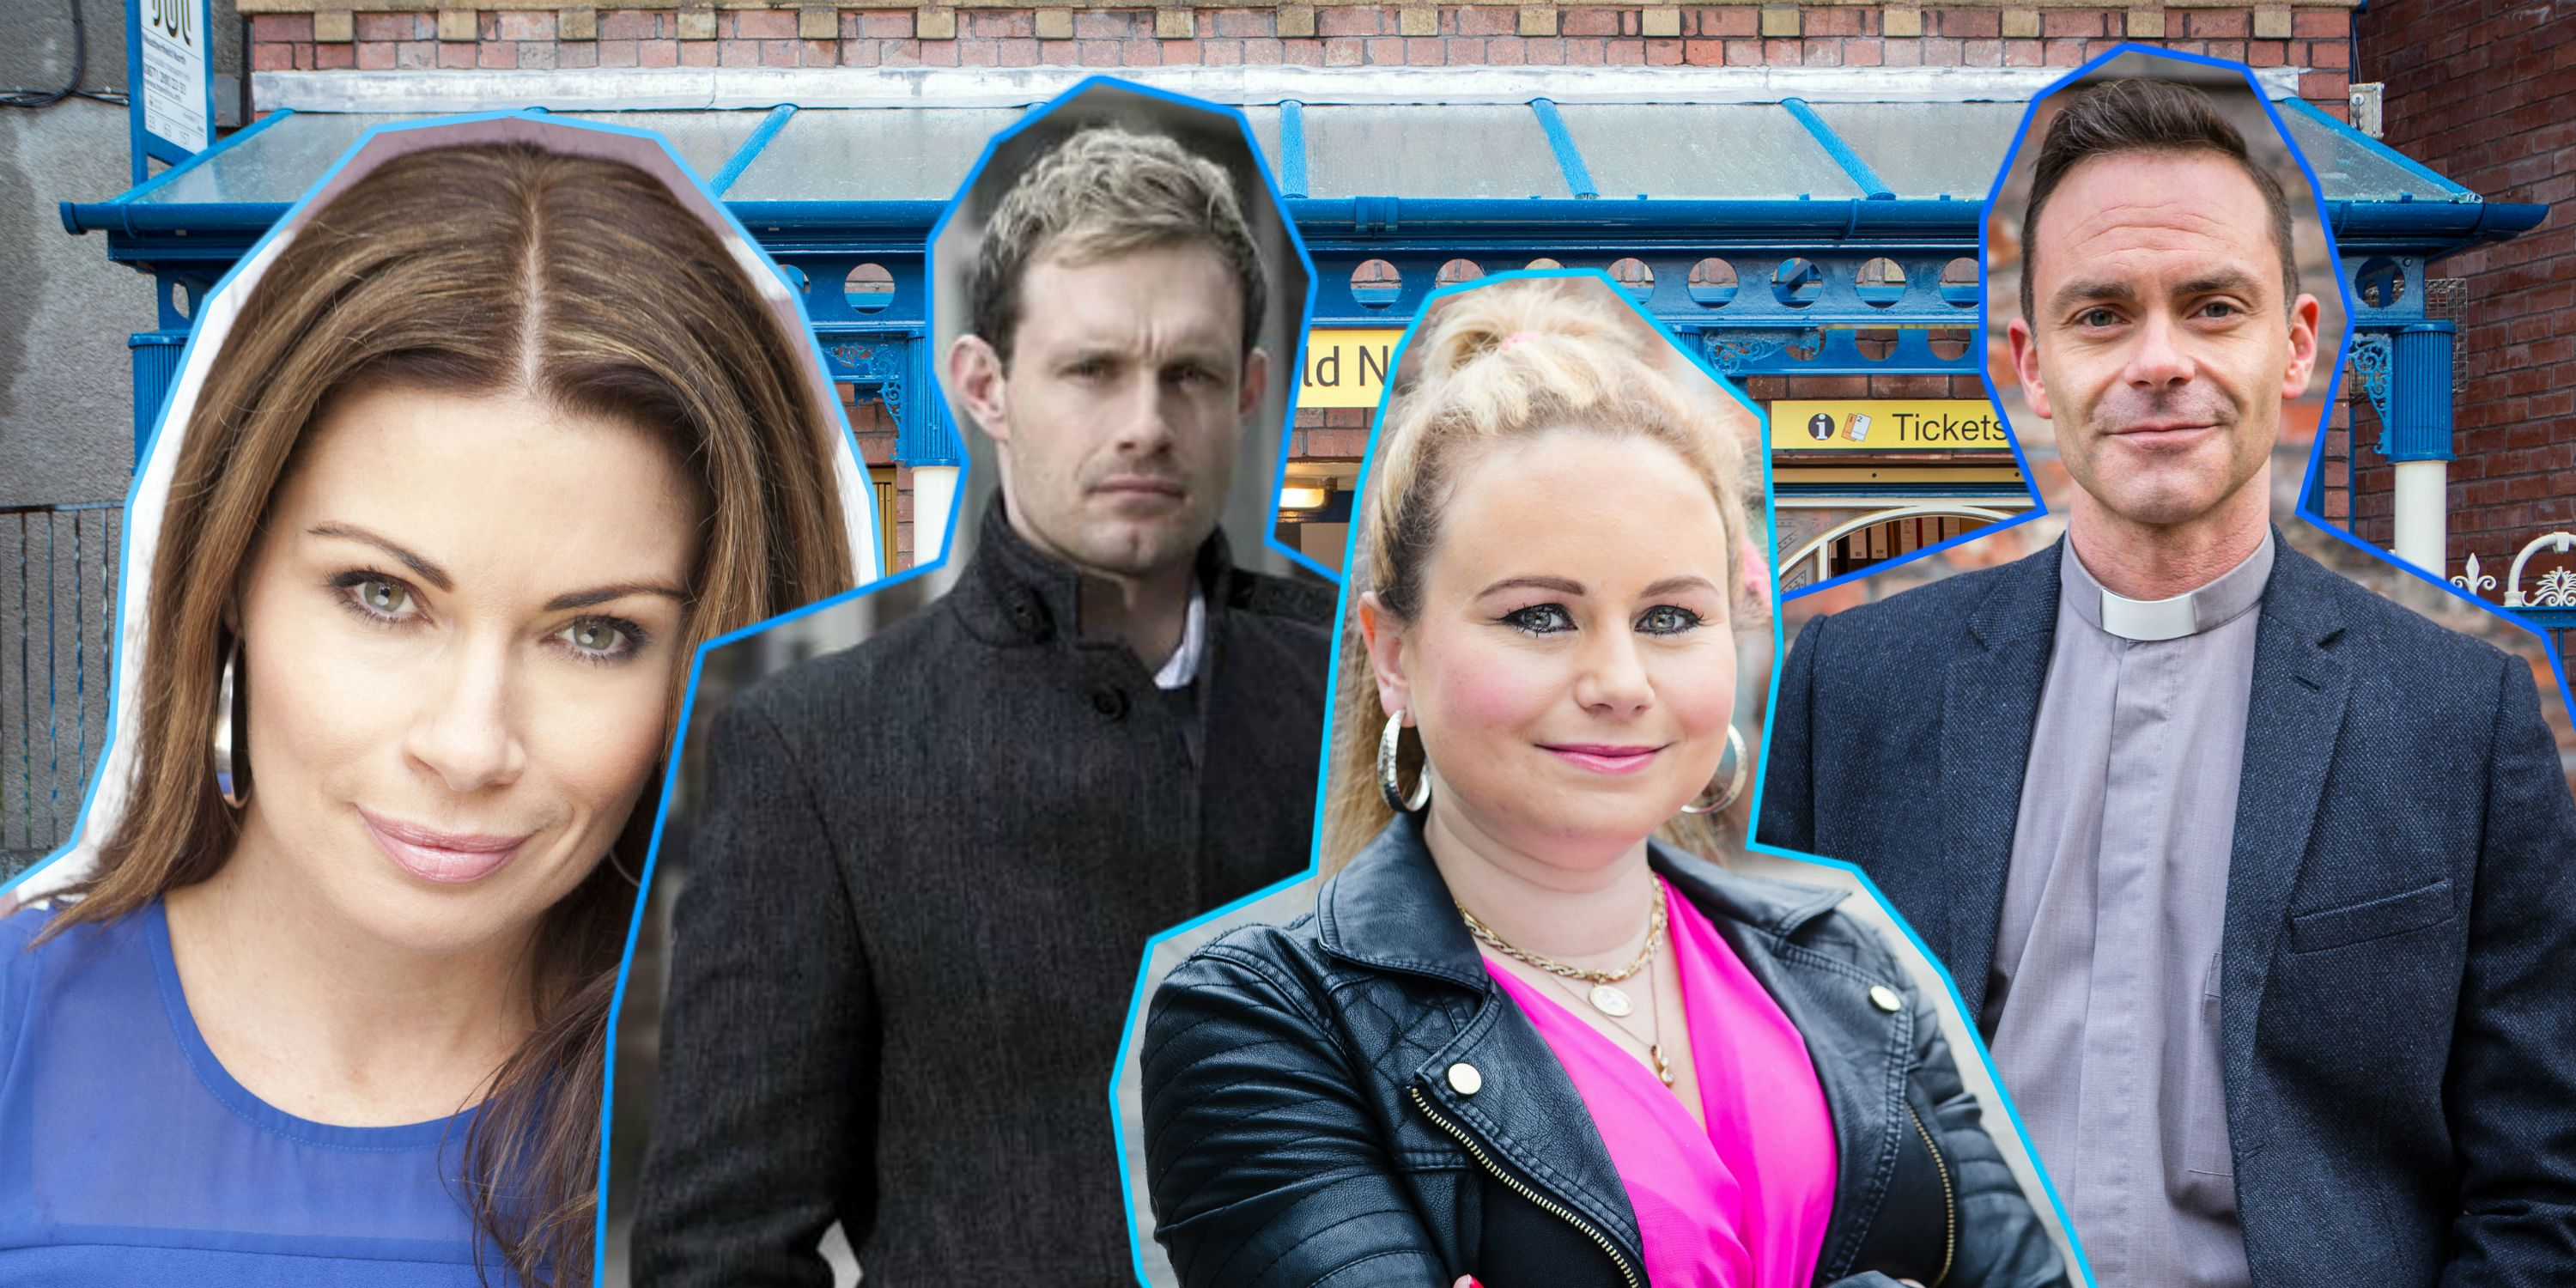 Coronation Street, Carla Connor (Alison King), Nick Tilsley (Ben Price), Gemma Winter (Dolly-Rose Campbell) and Billy Mayhew (Daniel Brocklebank)